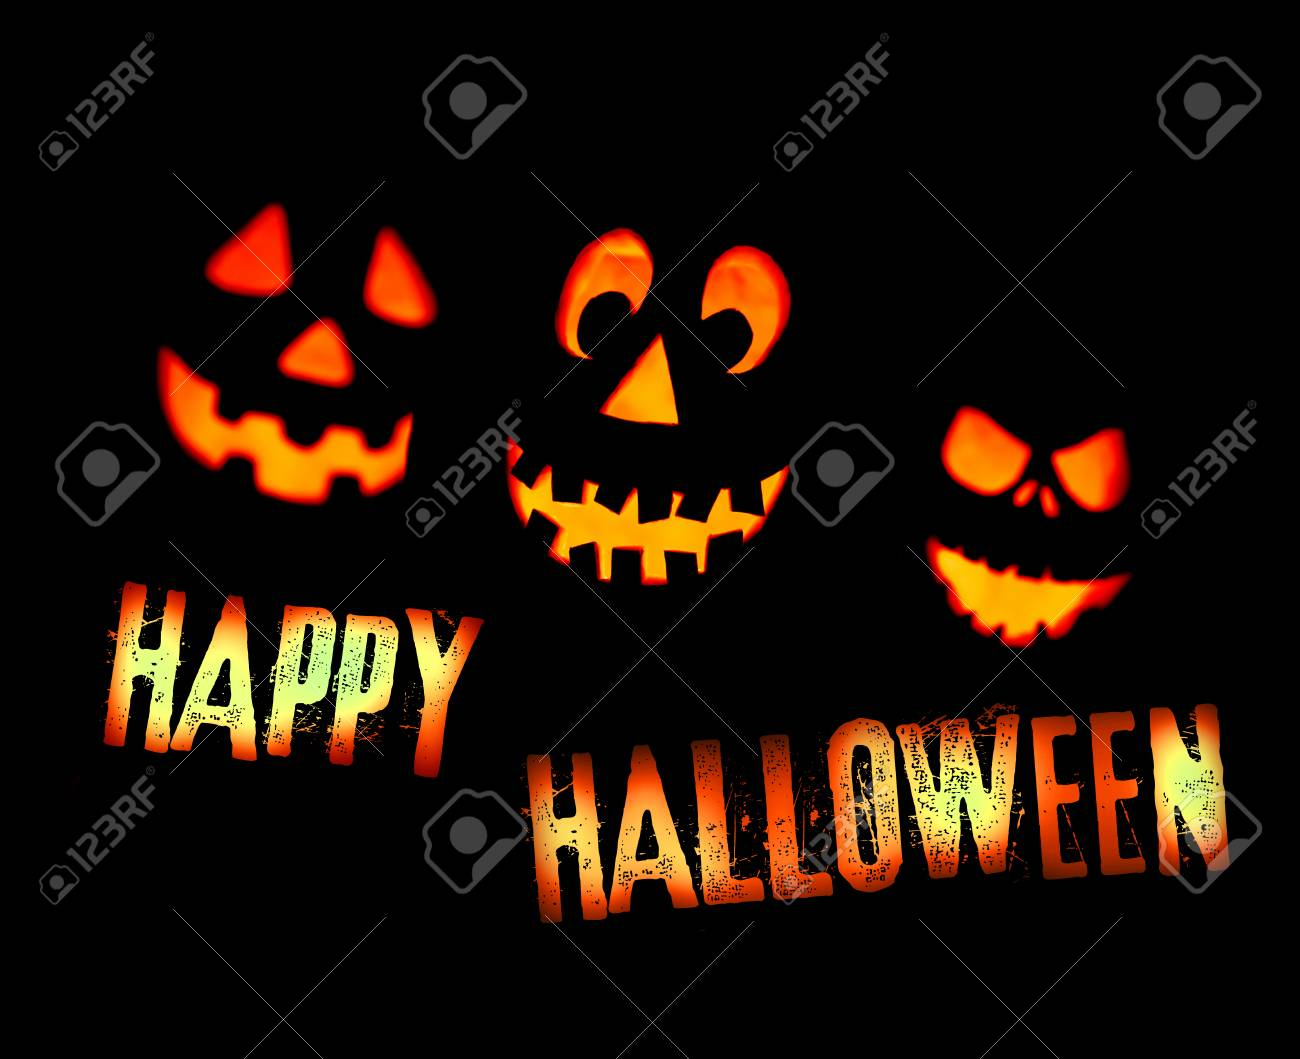 Superior Happy Halloween Card With Scary Pumpkin Faces And Lettering Saying Happy  Halloween, Yellow And Red